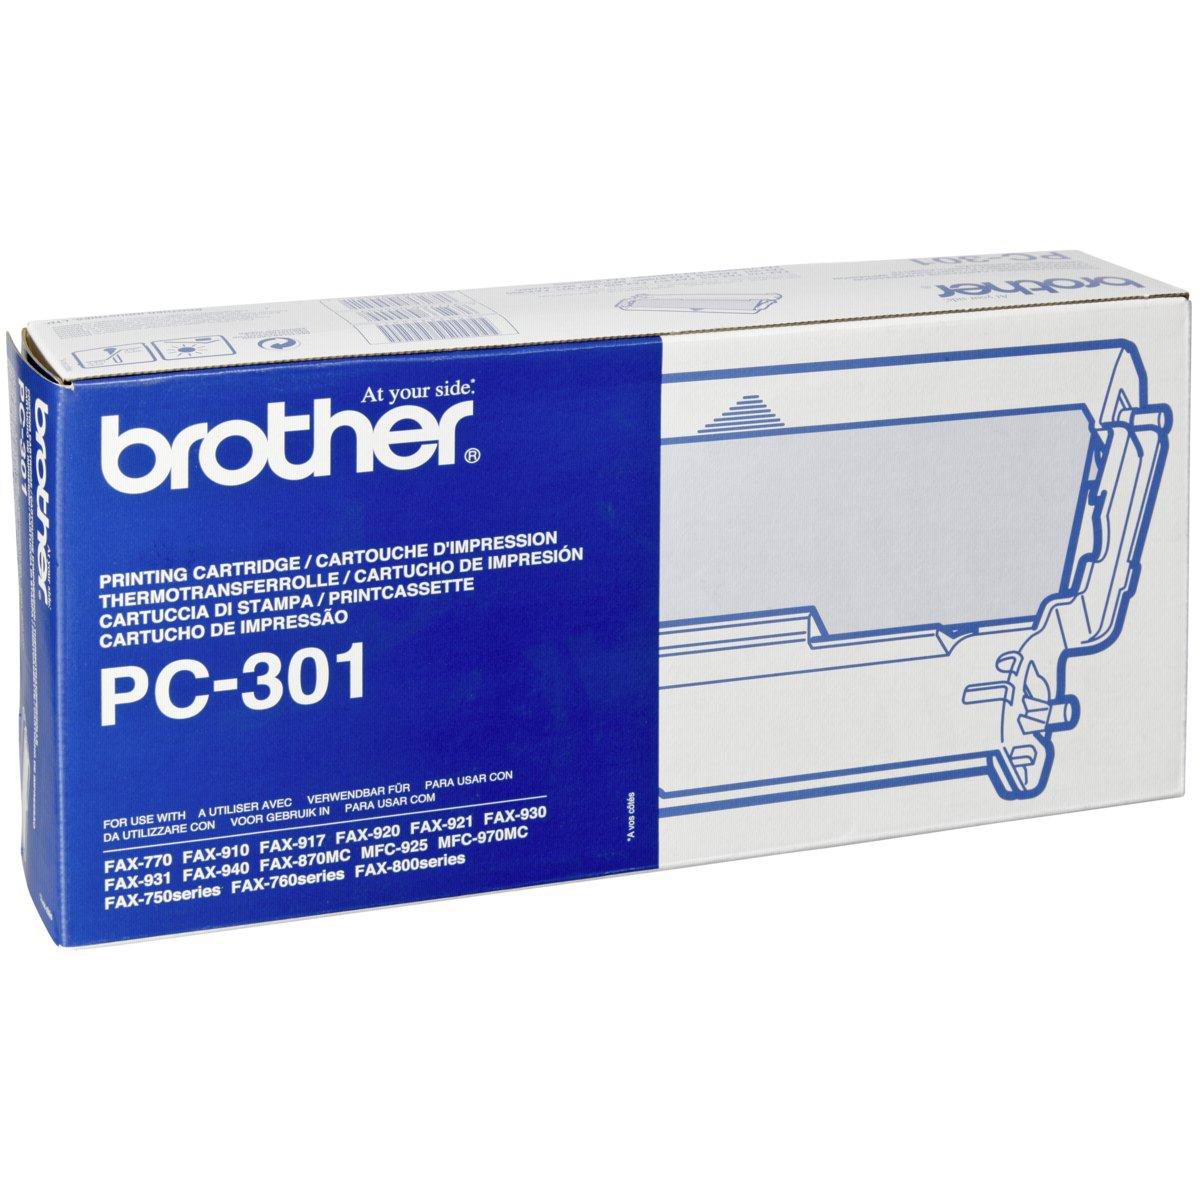 Original Brother PC-301RF Black Thermal Ribbon (PC301)